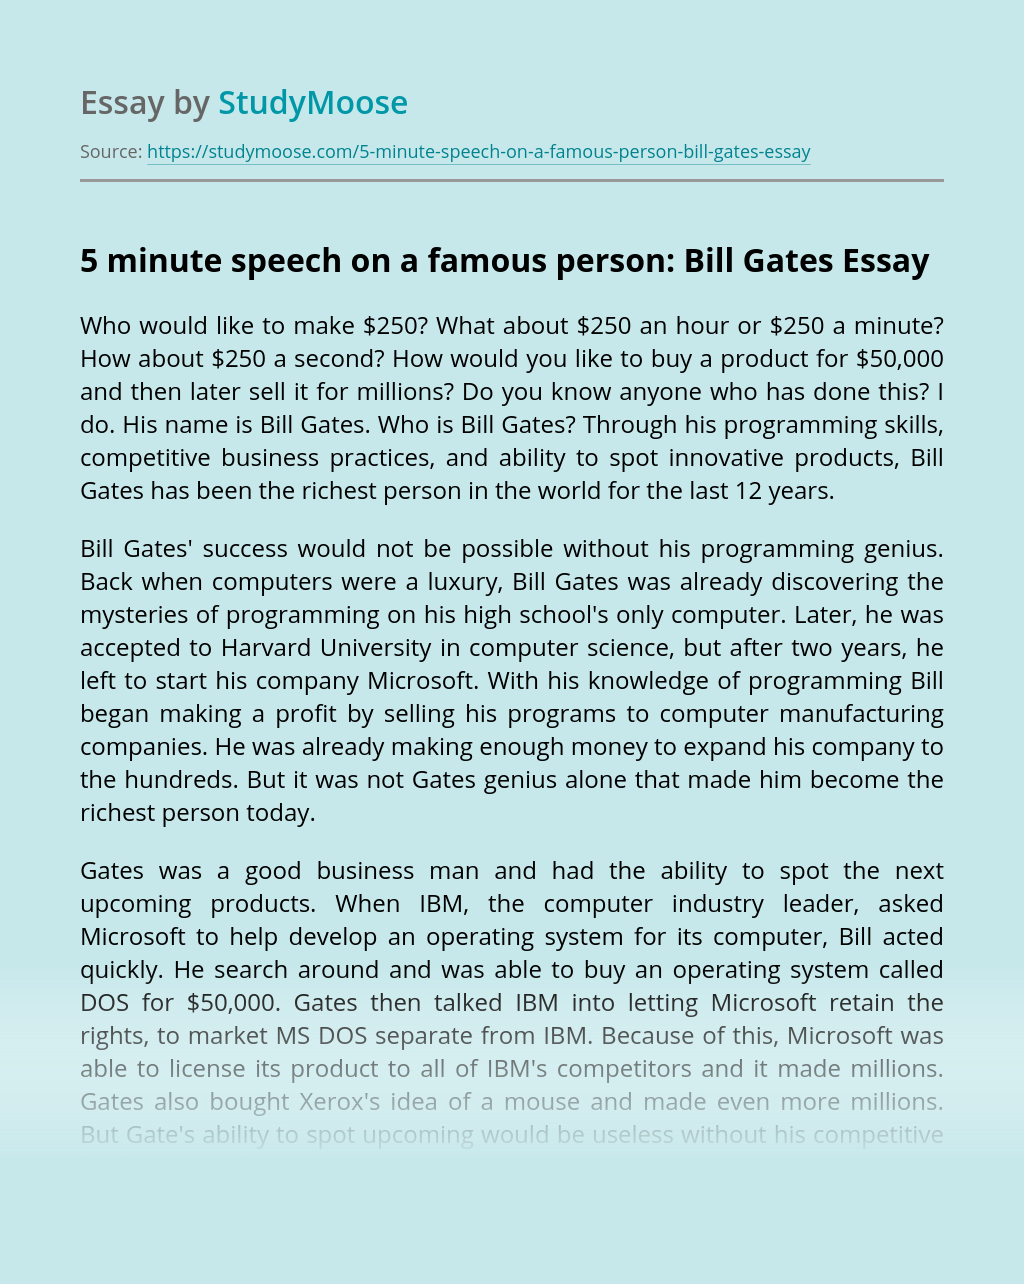 5 minute speech on a famous person: Bill Gates